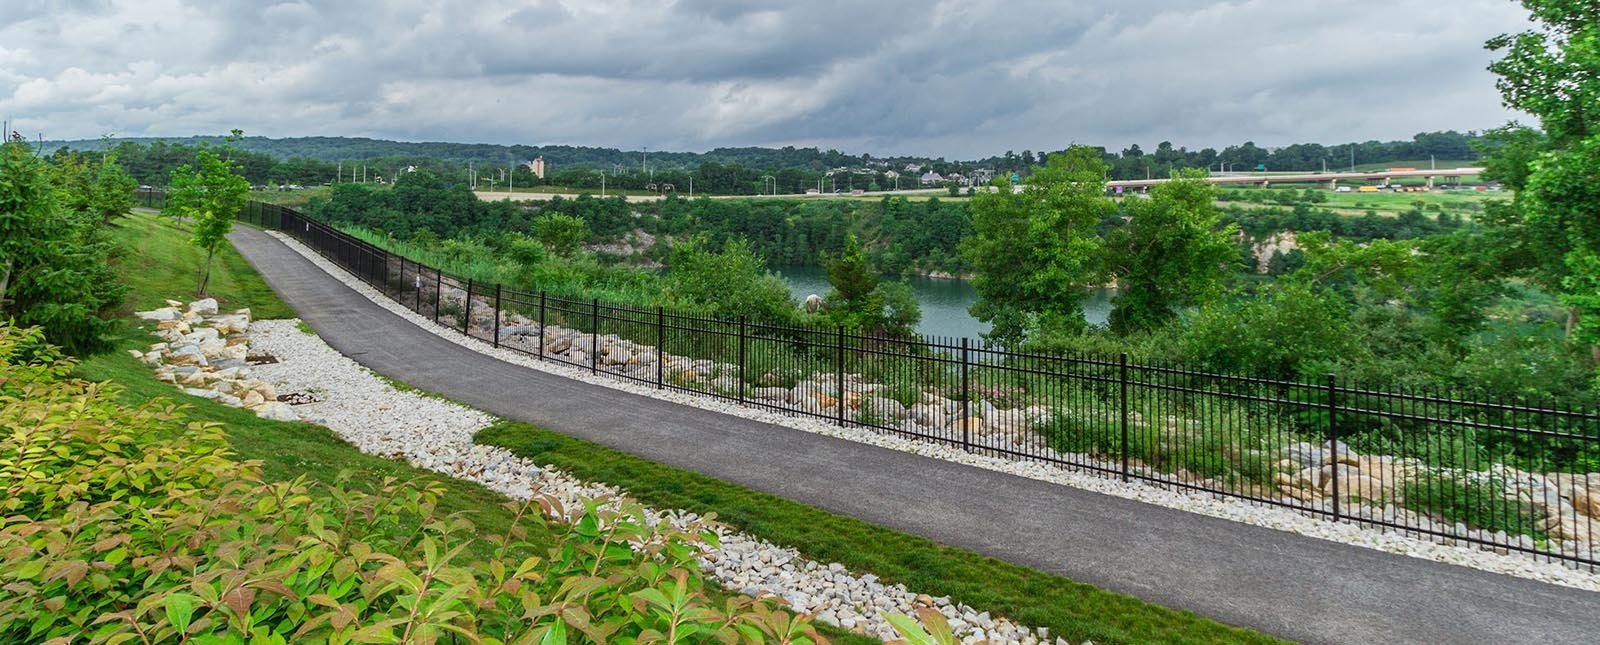 Walking Trails near The Haven luxury apartments in Malvern, PA